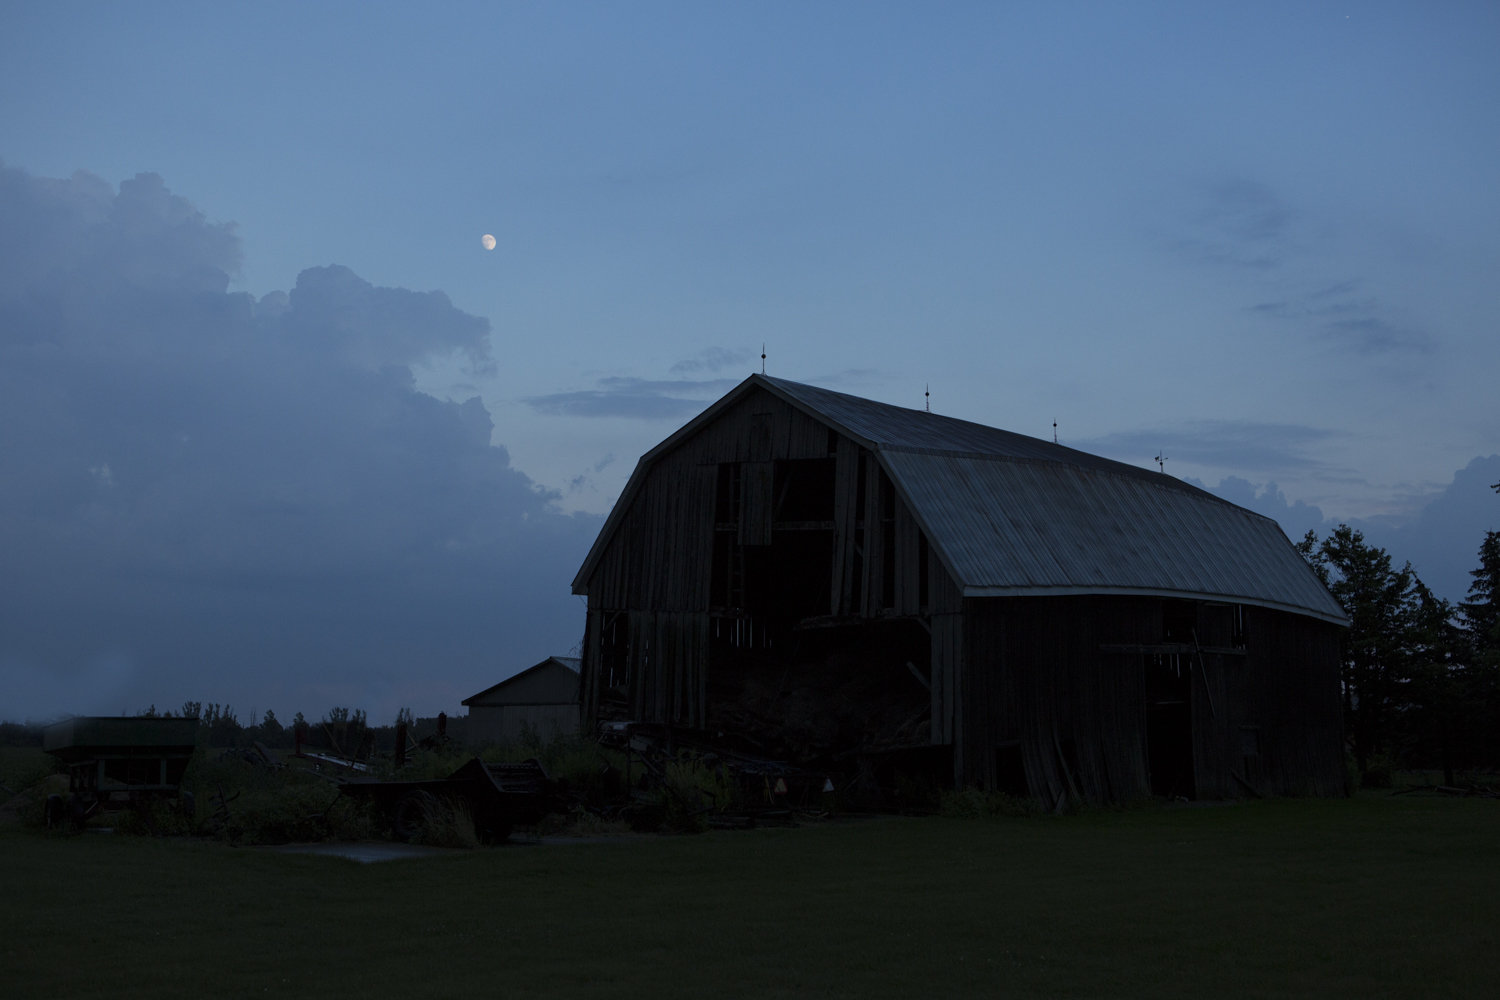 eco-friendly-photography-photo-barn-storm-moon.jpg